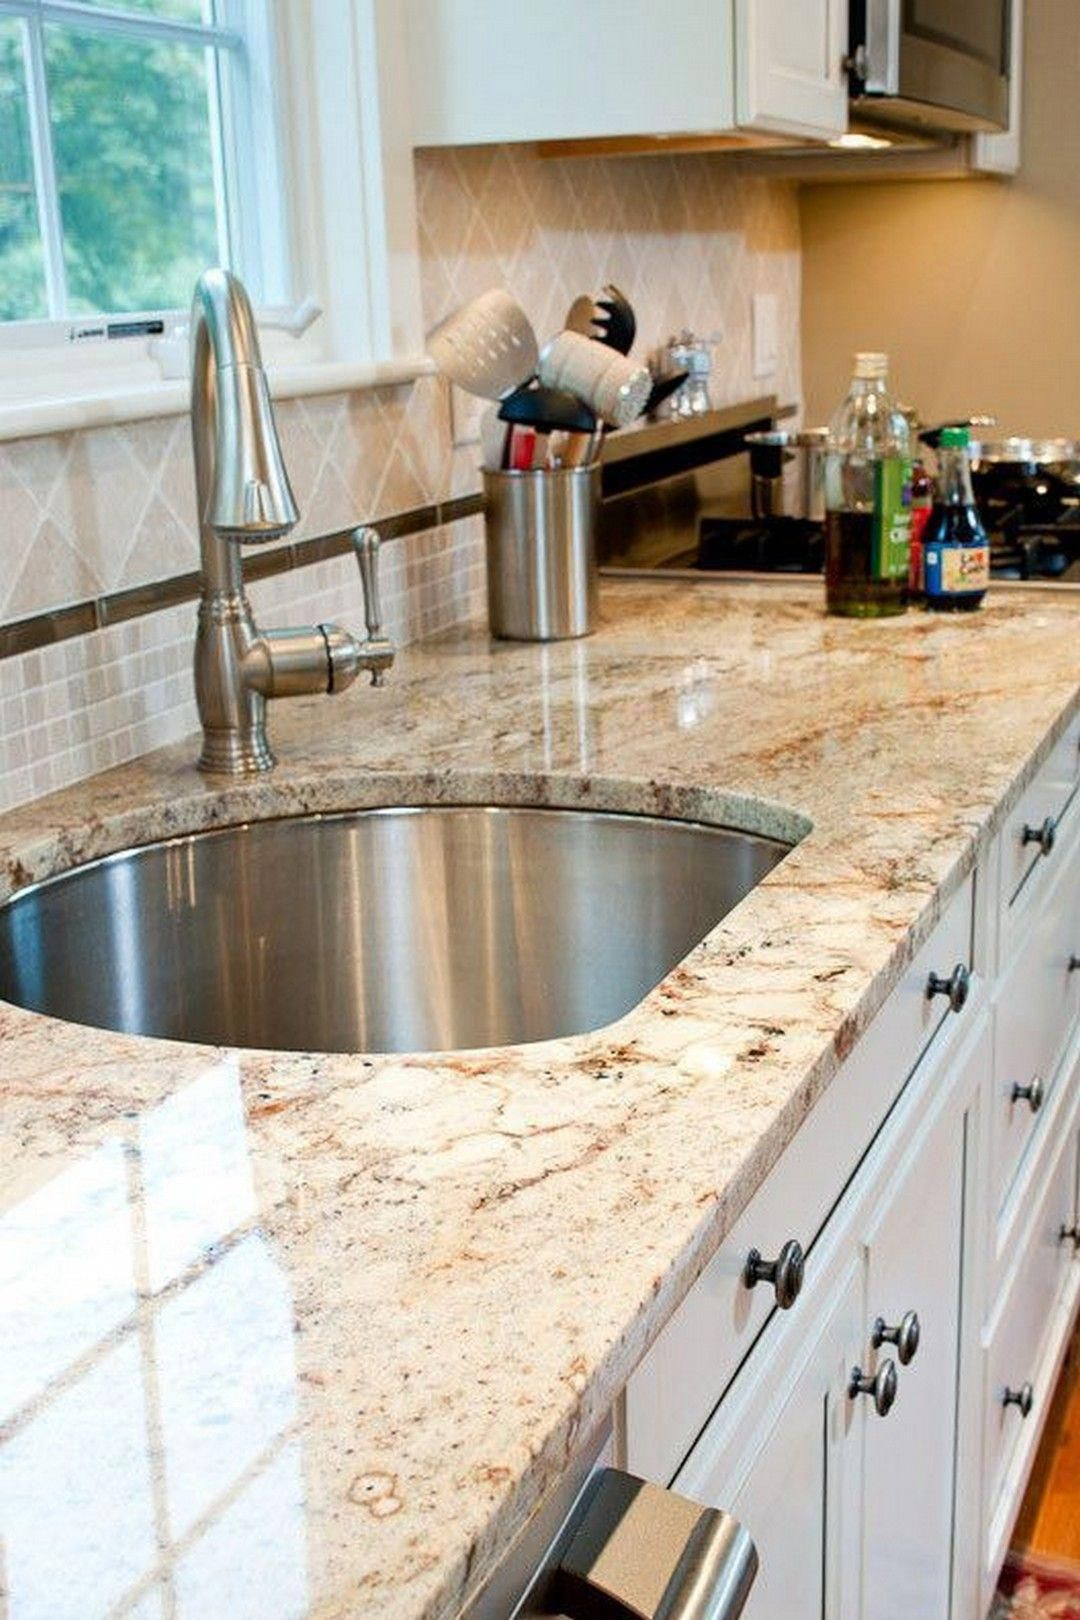 When It Concerns Installing A Dishwasher In The Kitchen A Large Number Of House Owners Just Get Rid Granite Countertops Kitchen Kitchen Remodel Kitchen Models